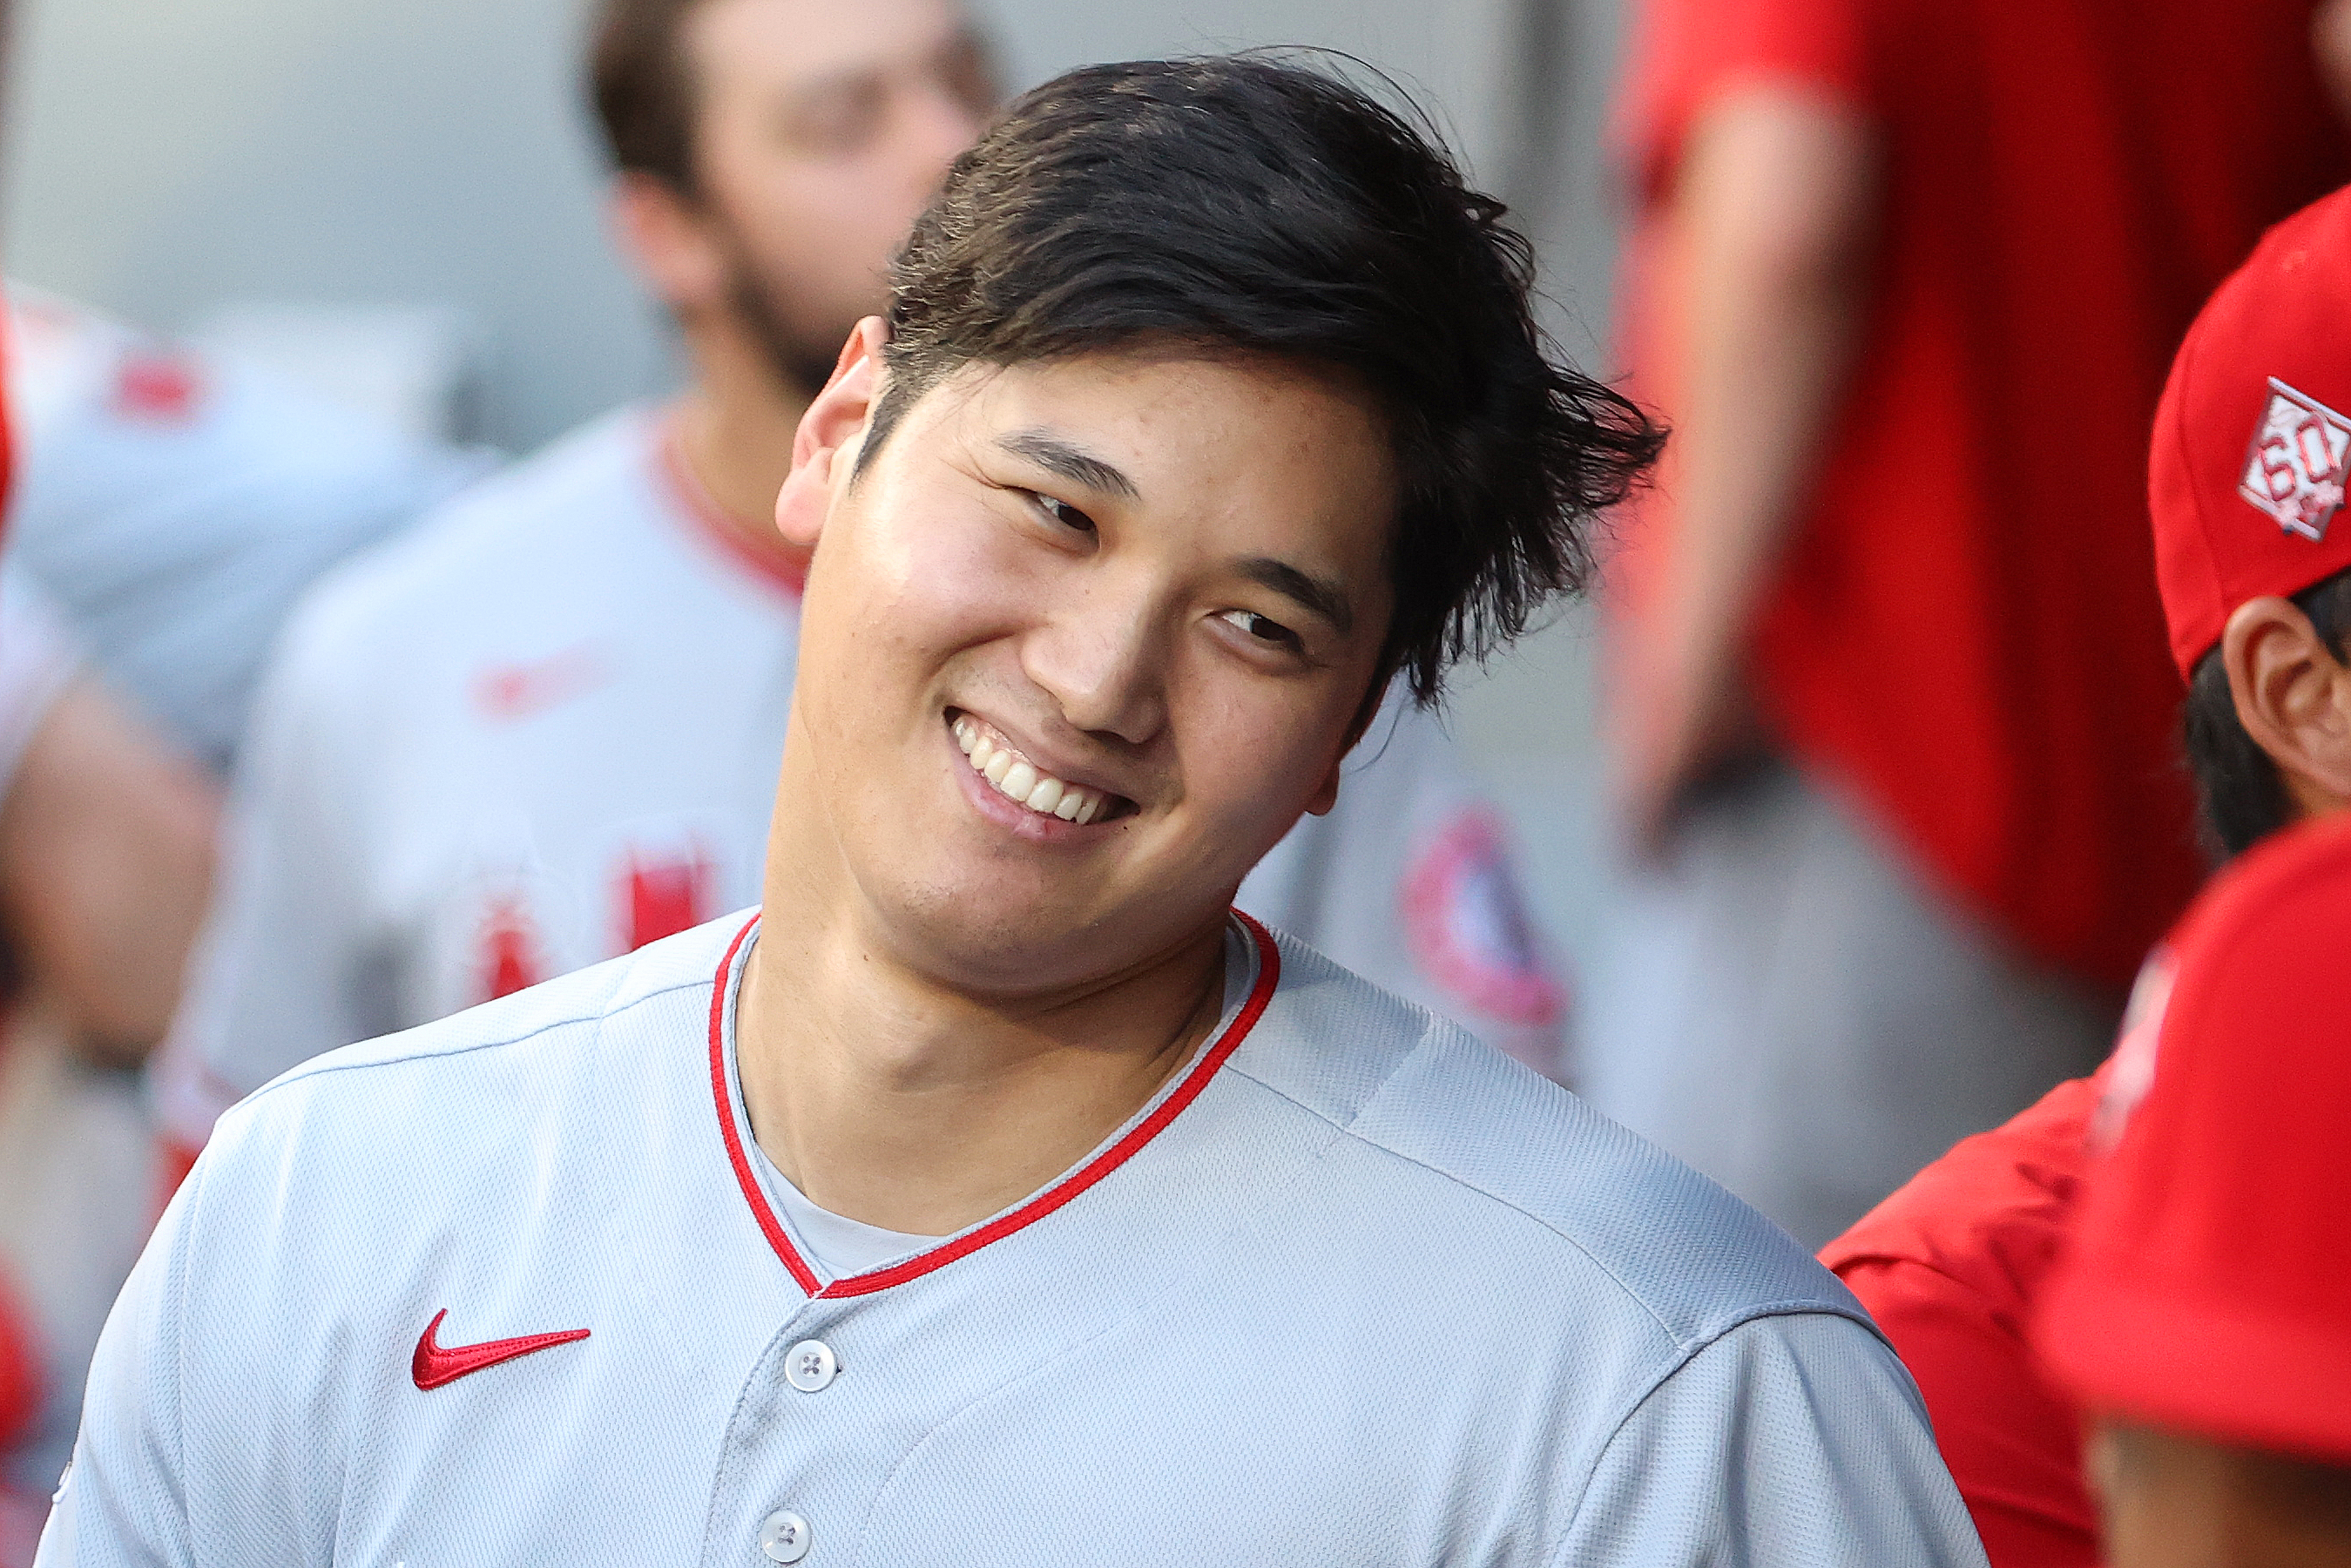 Shohei Ohtani #17 of the Los Angeles Angels celebrates in the dugout after hitting a solo home run during the third inning against the Seattle Mariners at T-Mobile Park on July 09, 2021 in Seattle, Washington.